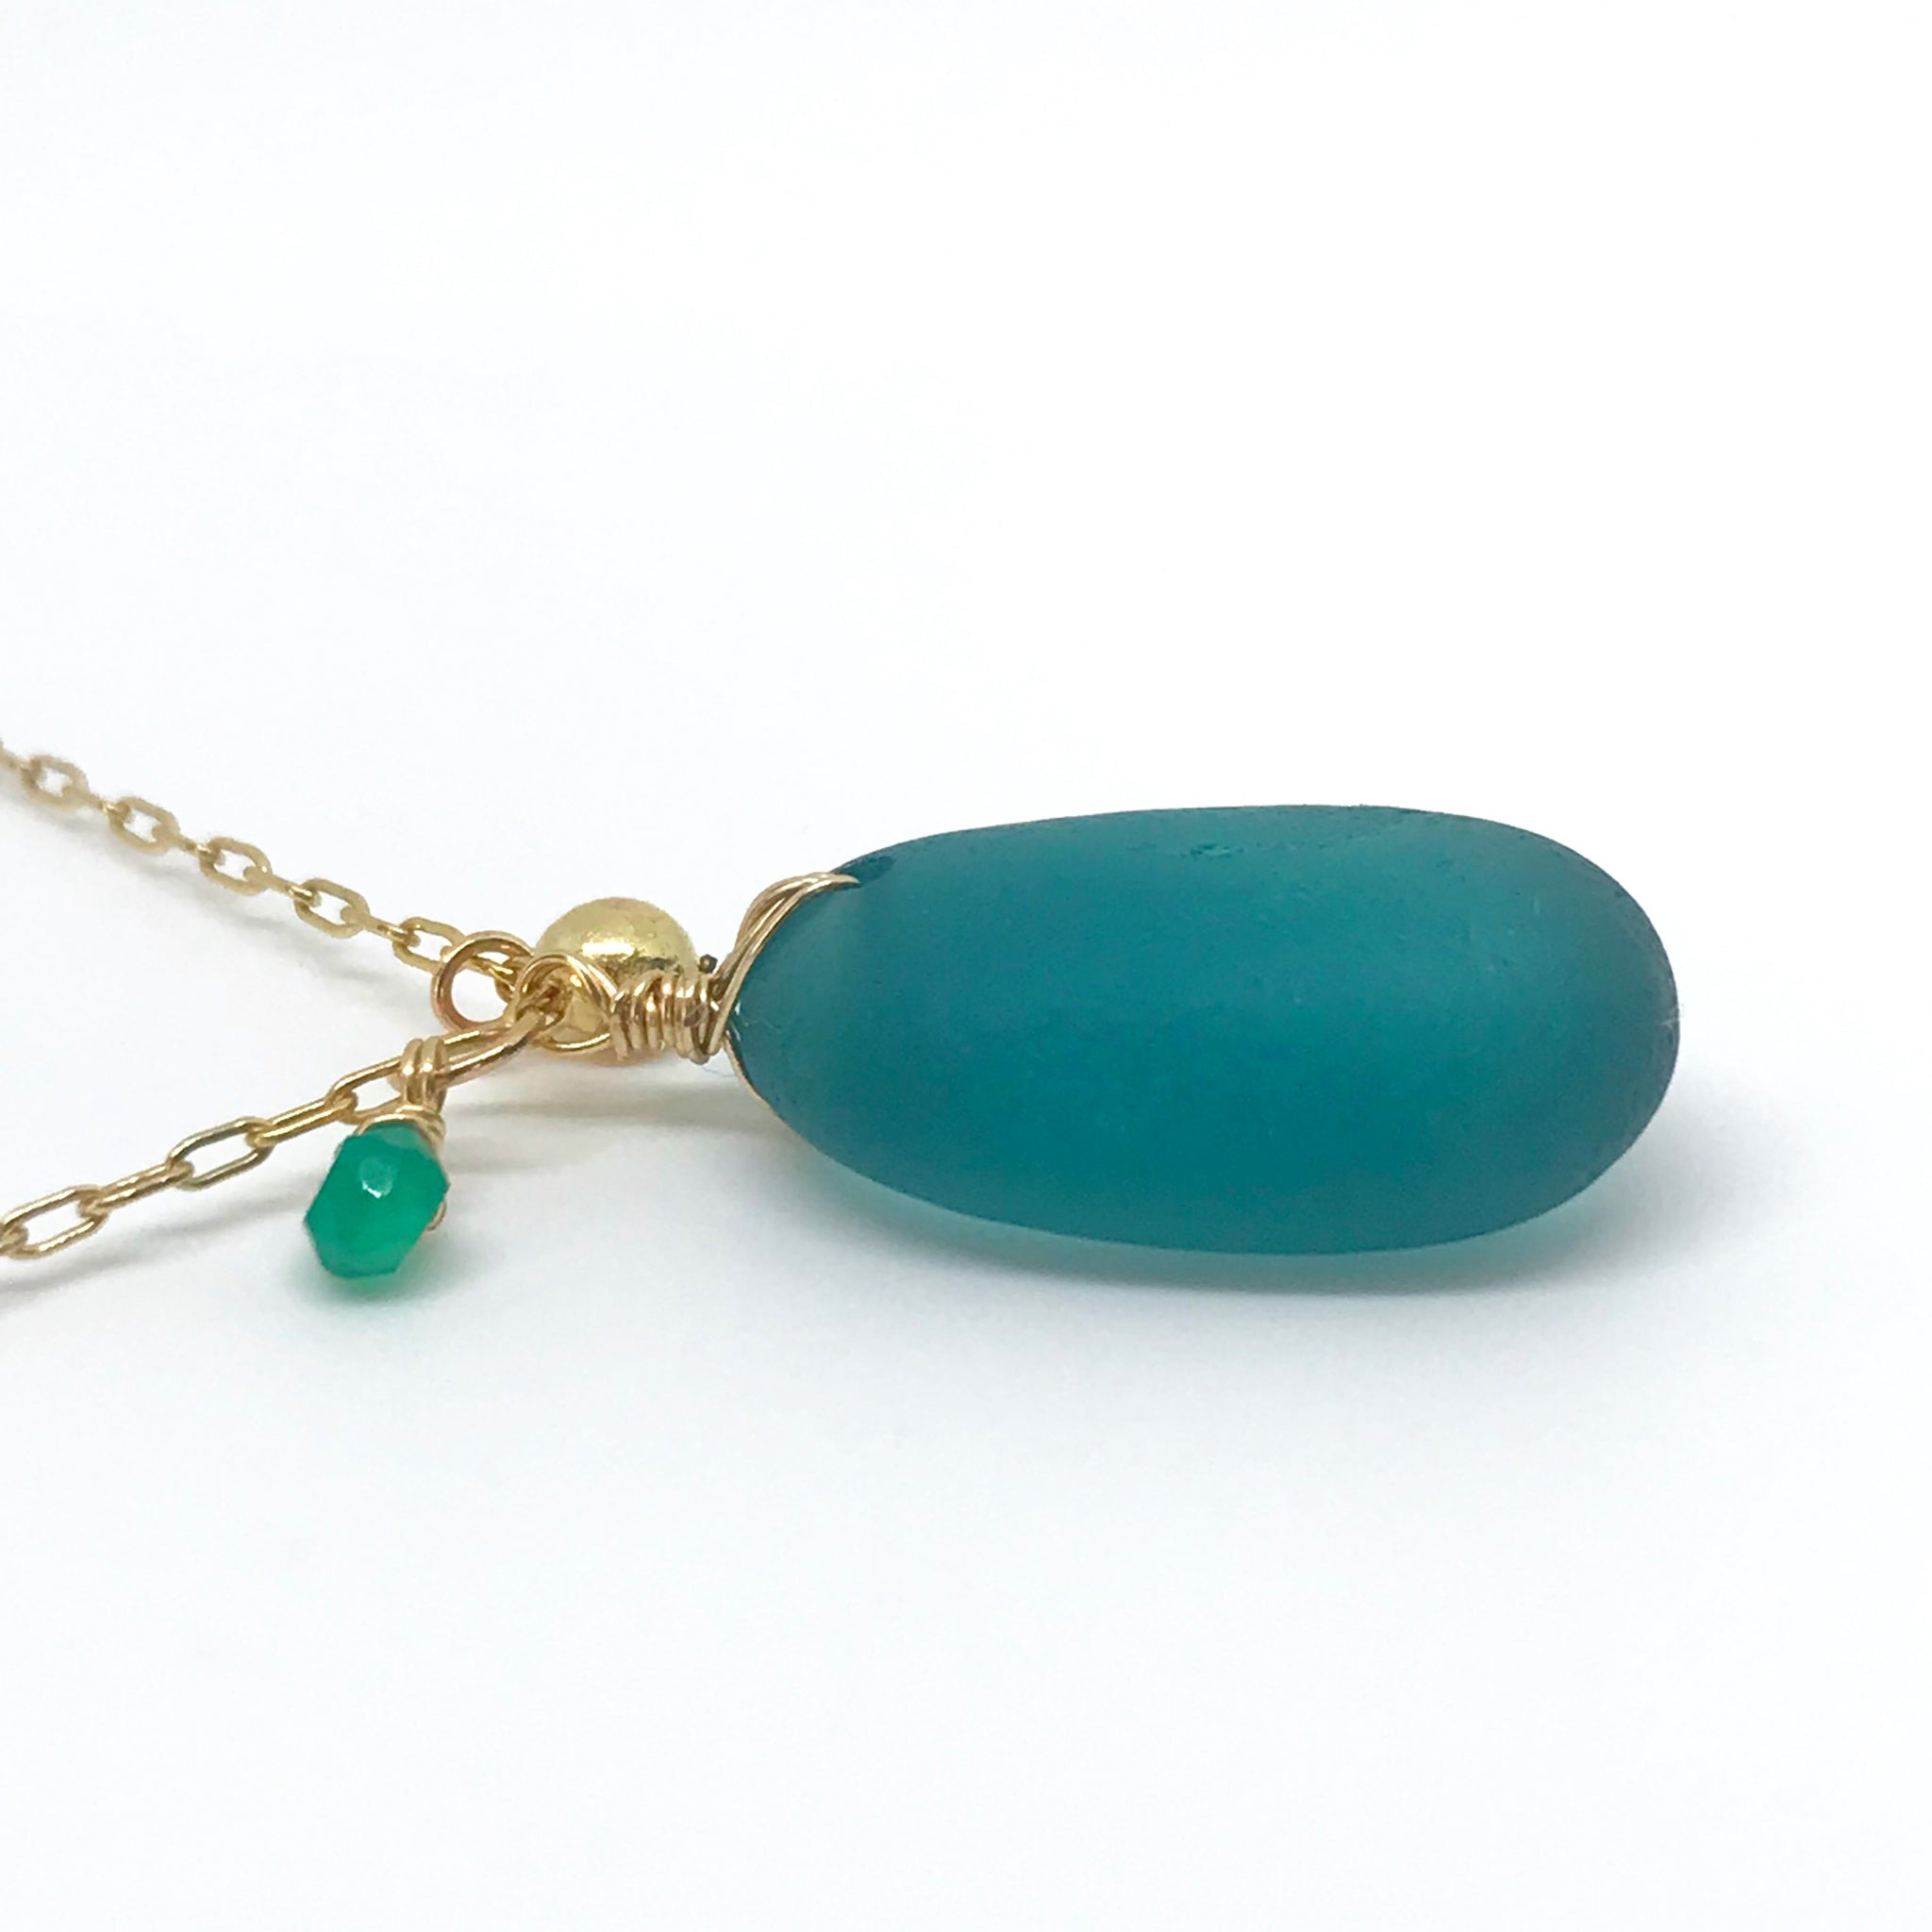 Teal Seaglass Necklace on Long Gold chain – Kriket Broadhurst jewellery Australian made